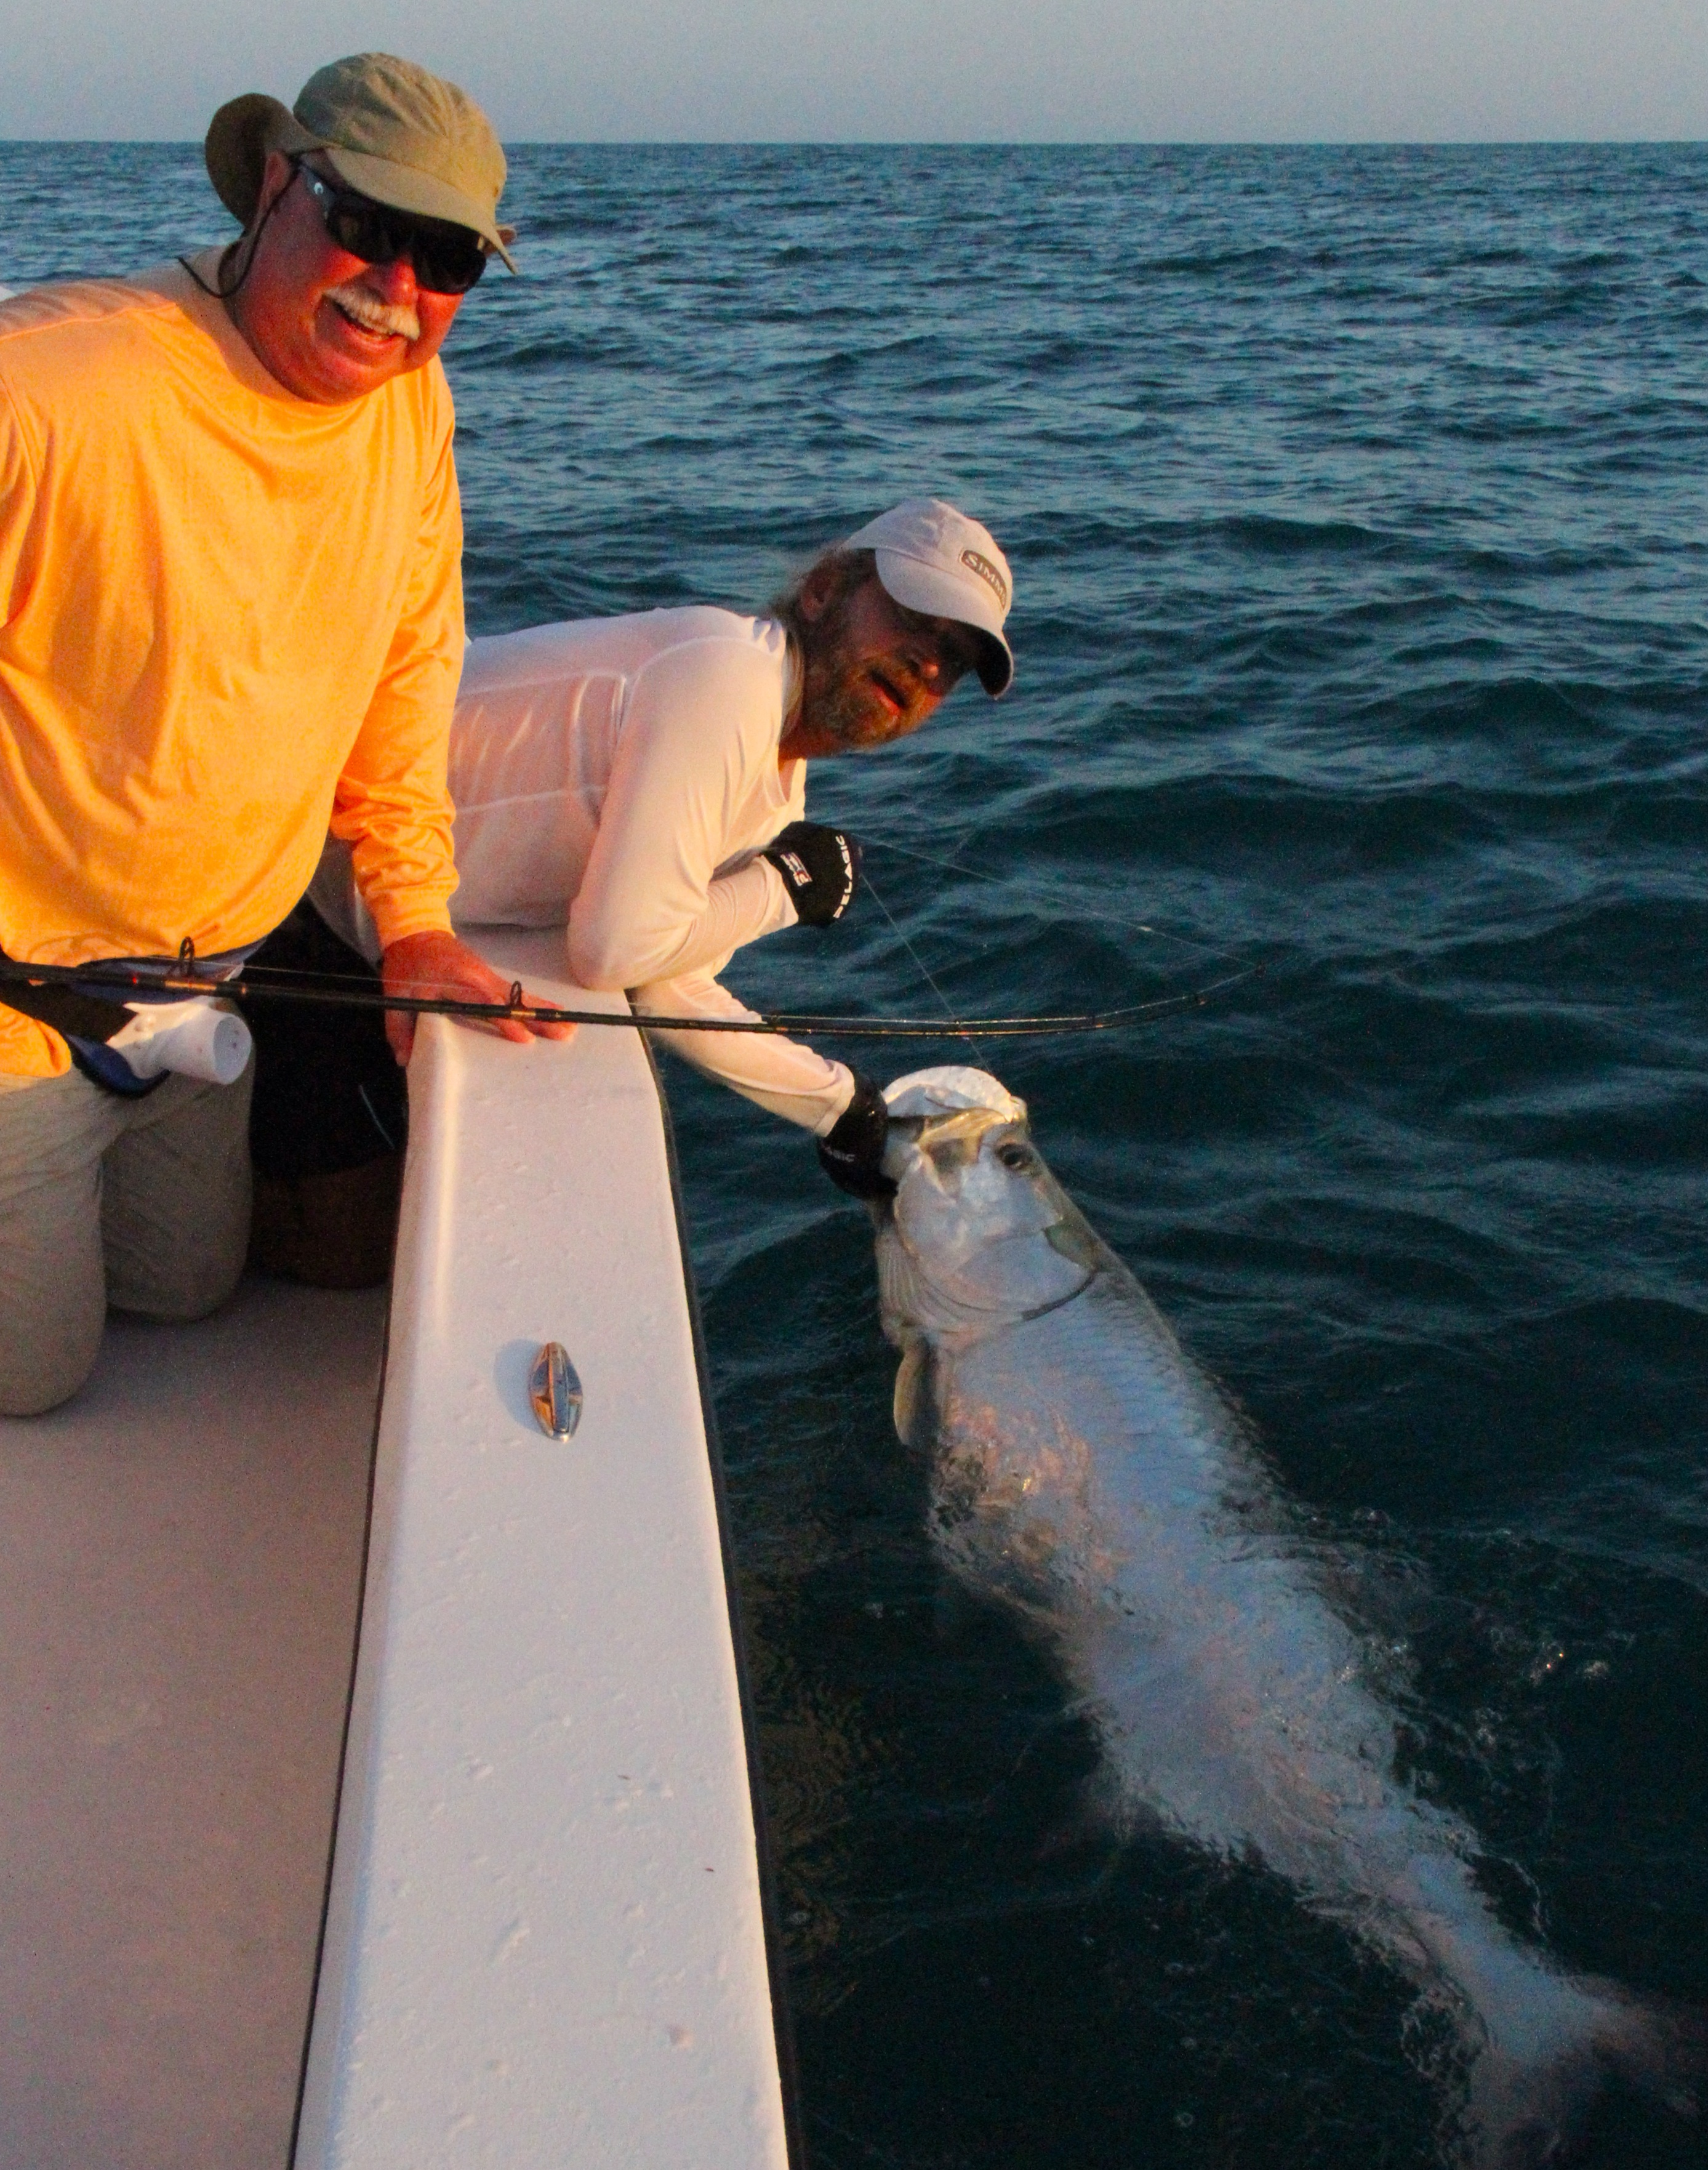 Capt. Mark Bennett tarpon fishing